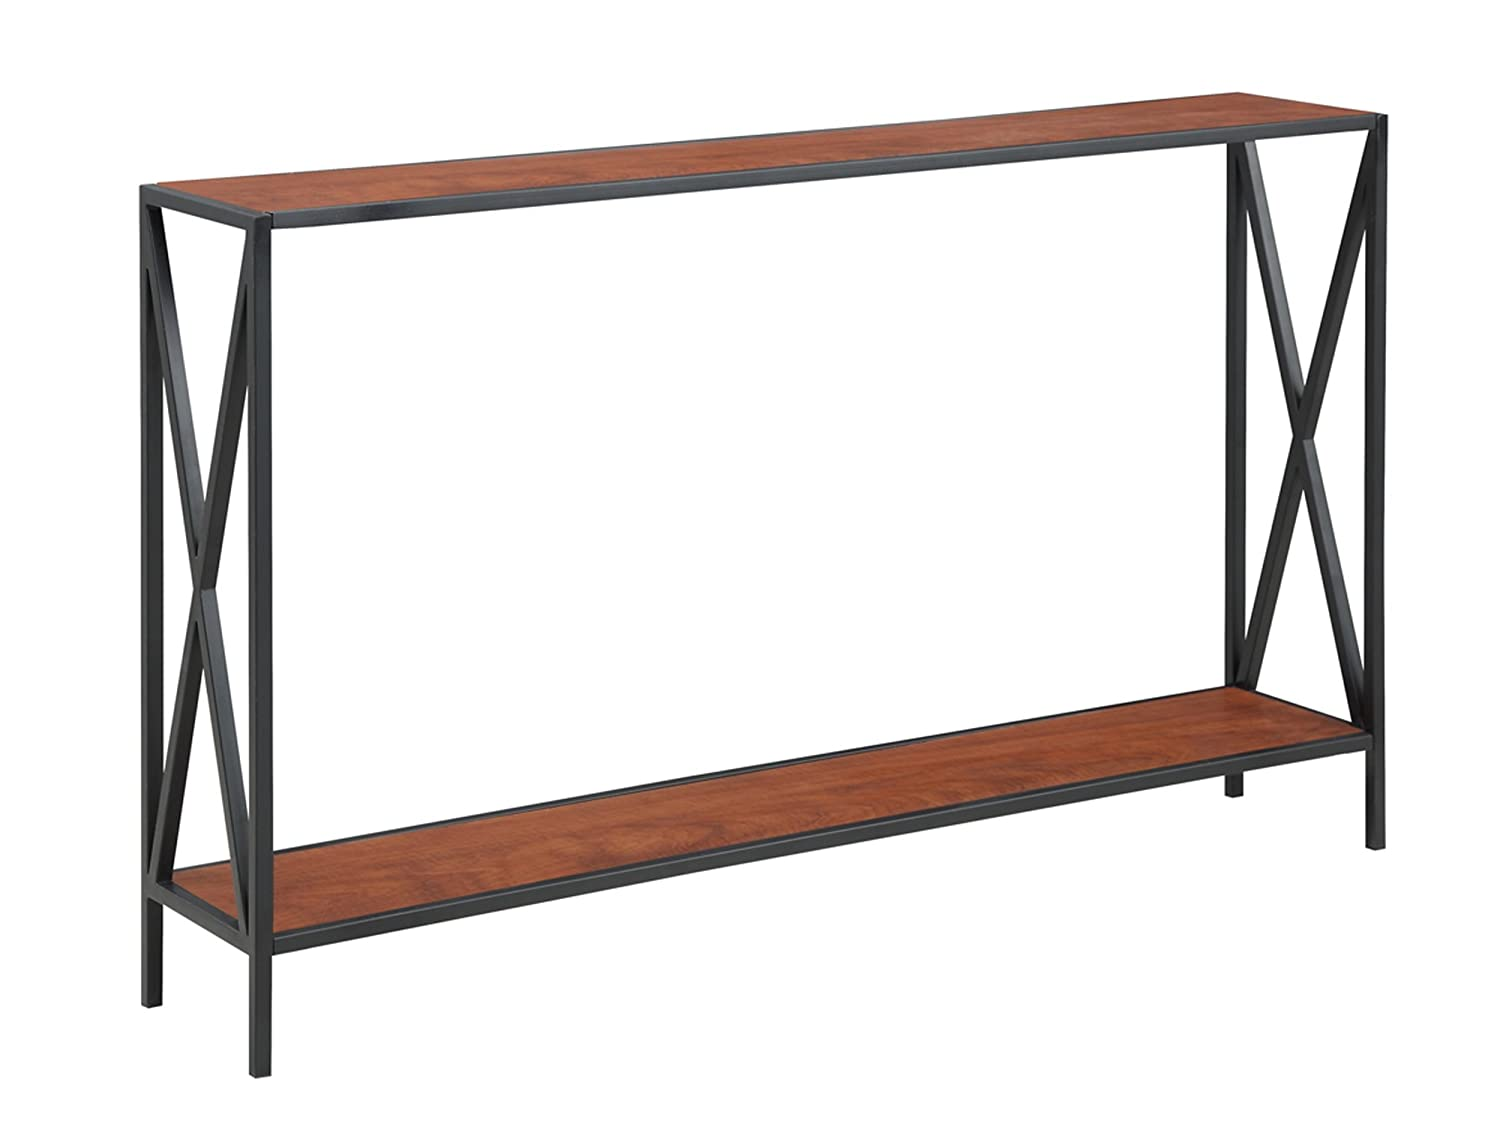 Amazon convenience concepts tucson collection console table amazon convenience concepts tucson collection console table blackcherry kitchen dining geotapseo Image collections